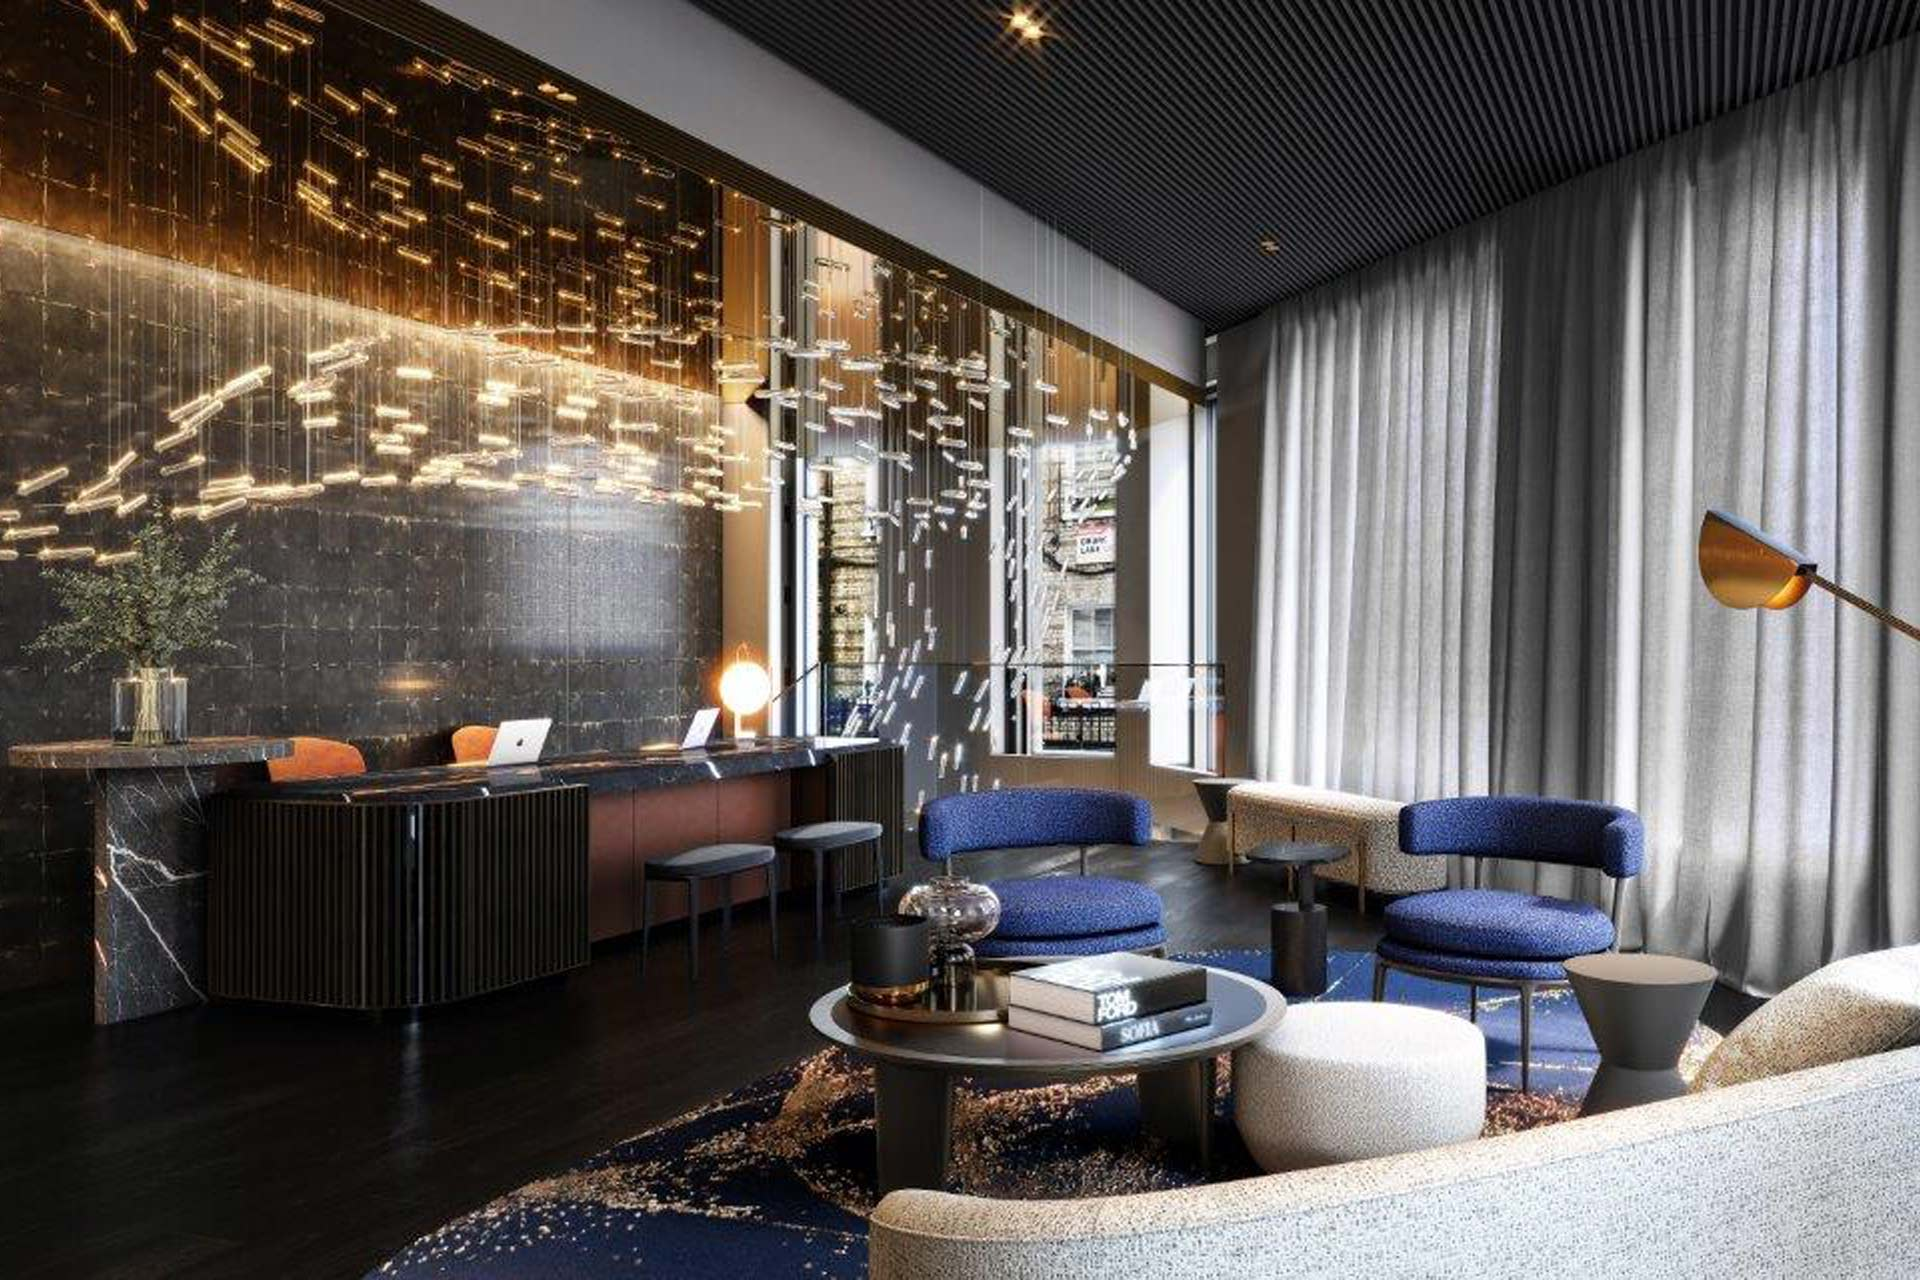 A rendering of Amano Hotel in Covent Garden, London